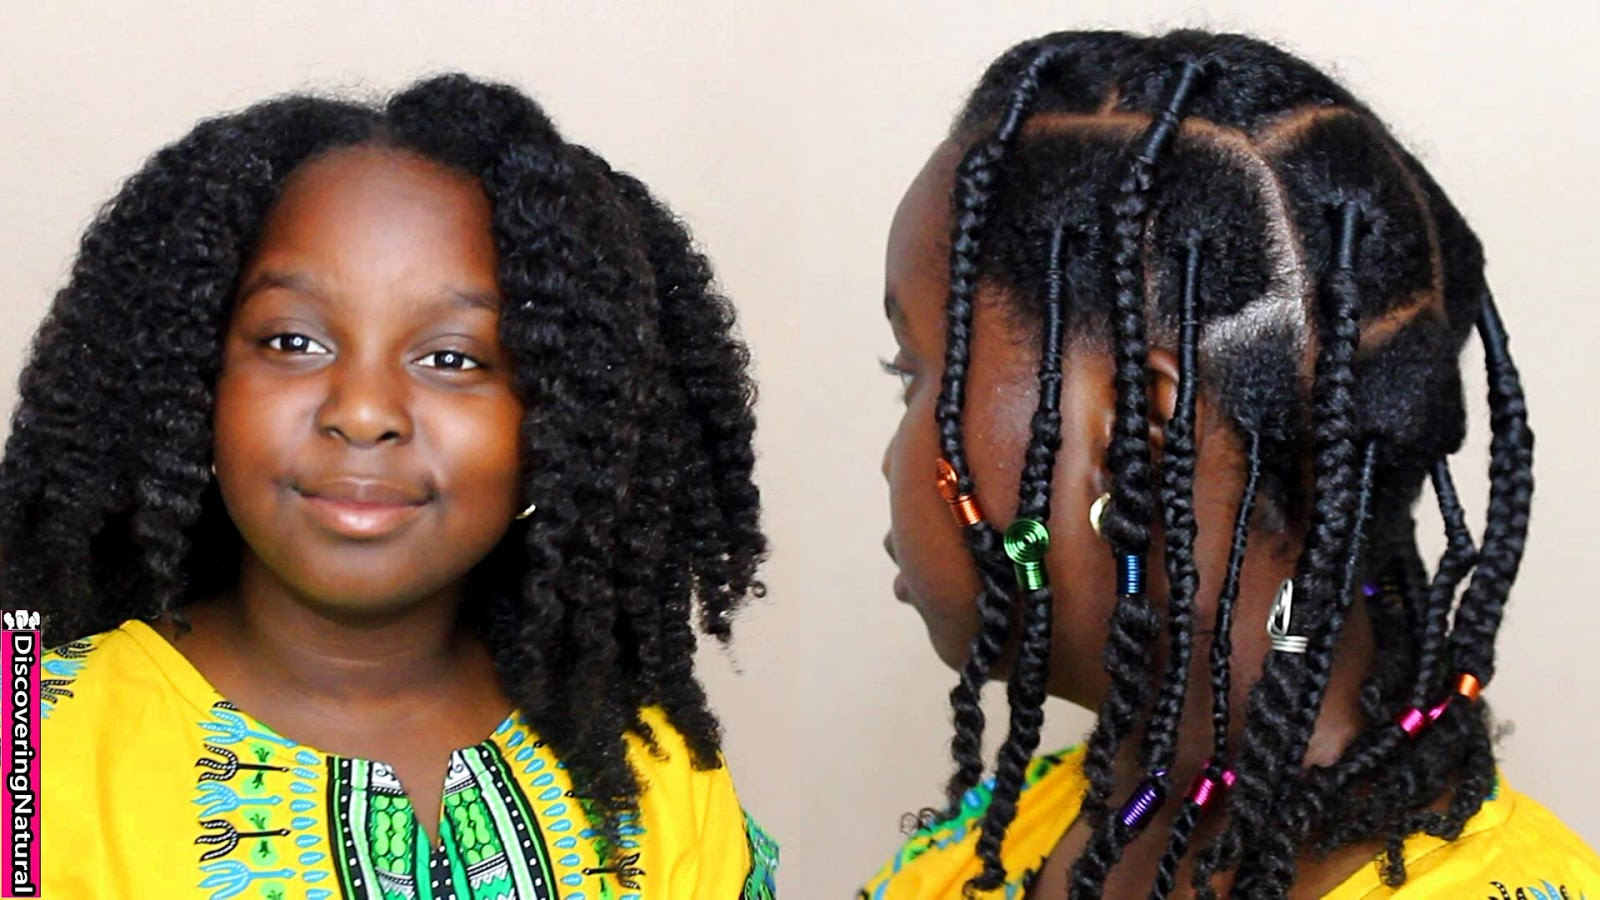 Discussion on this topic: How to Braid Your Hair With Thread, how-to-braid-your-hair-with-thread/